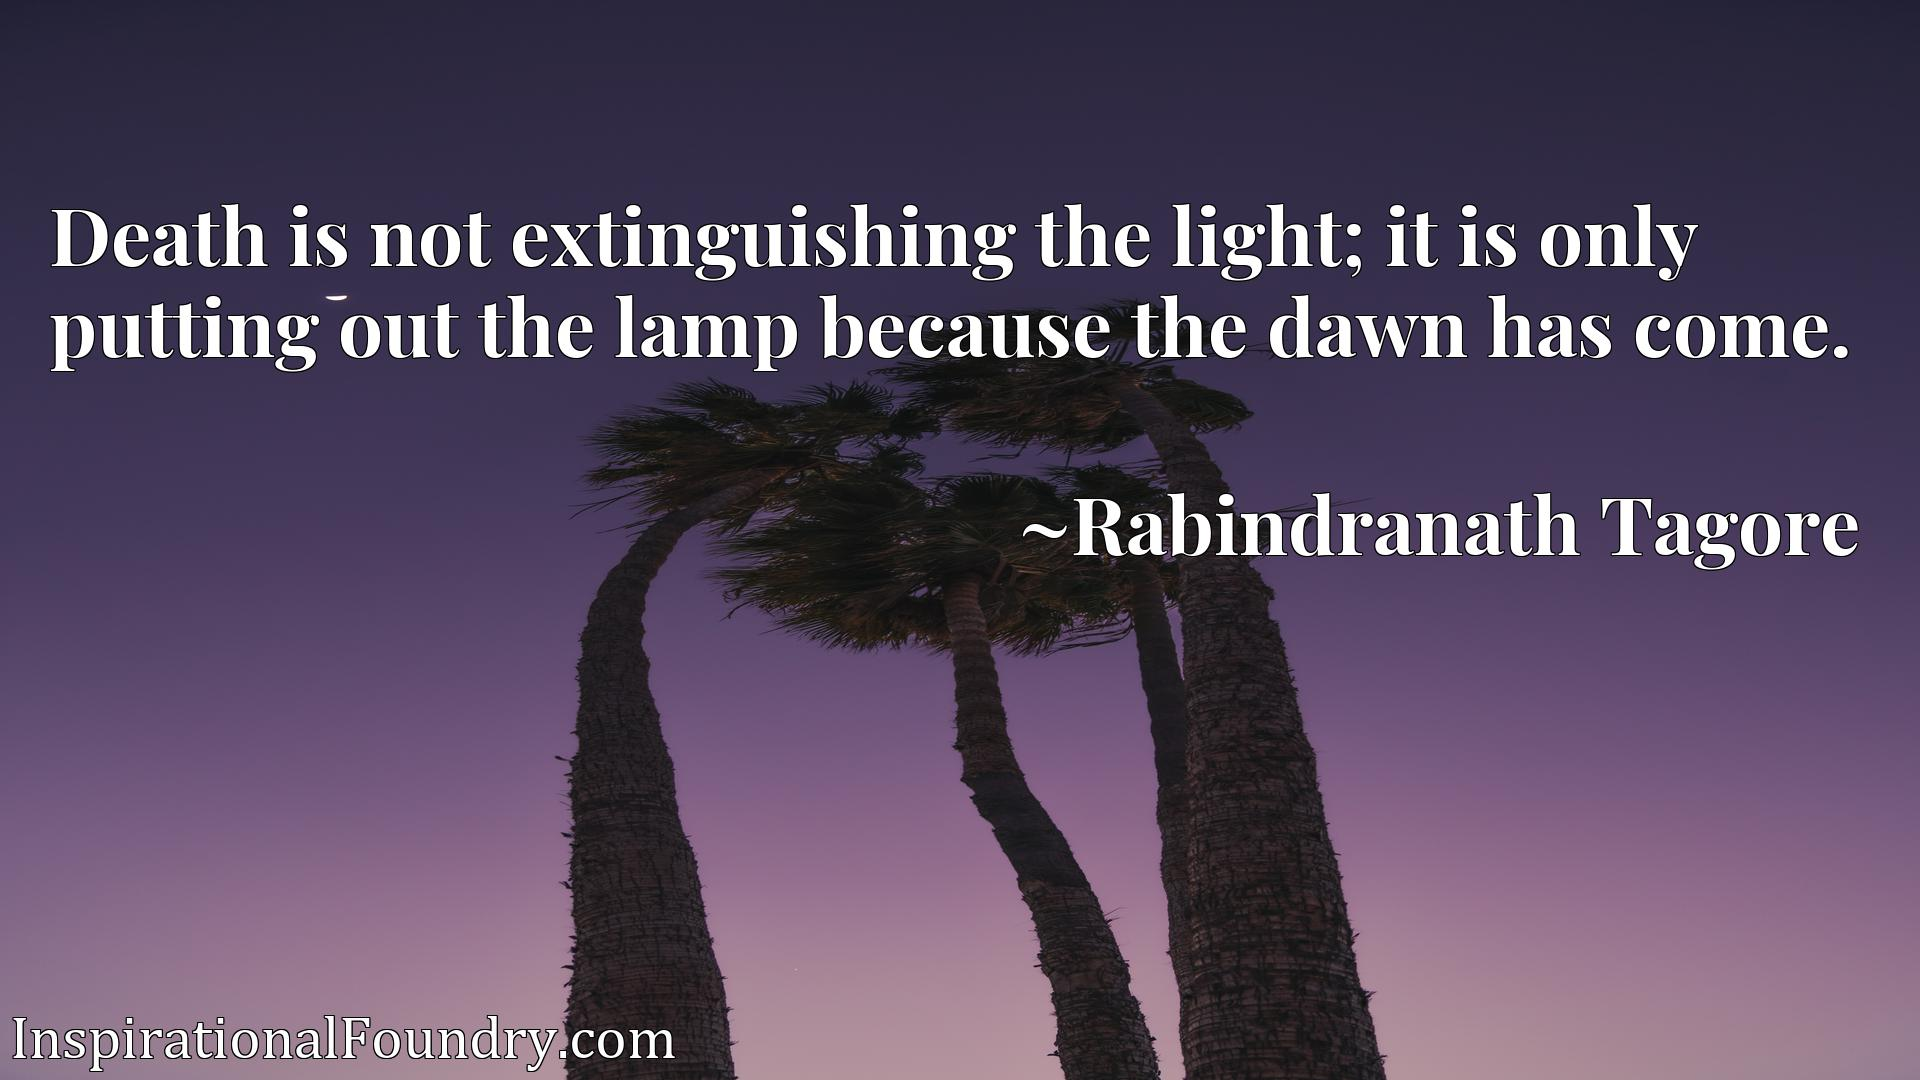 Death is not extinguishing the light; it is only putting out the lamp because the dawn has come.